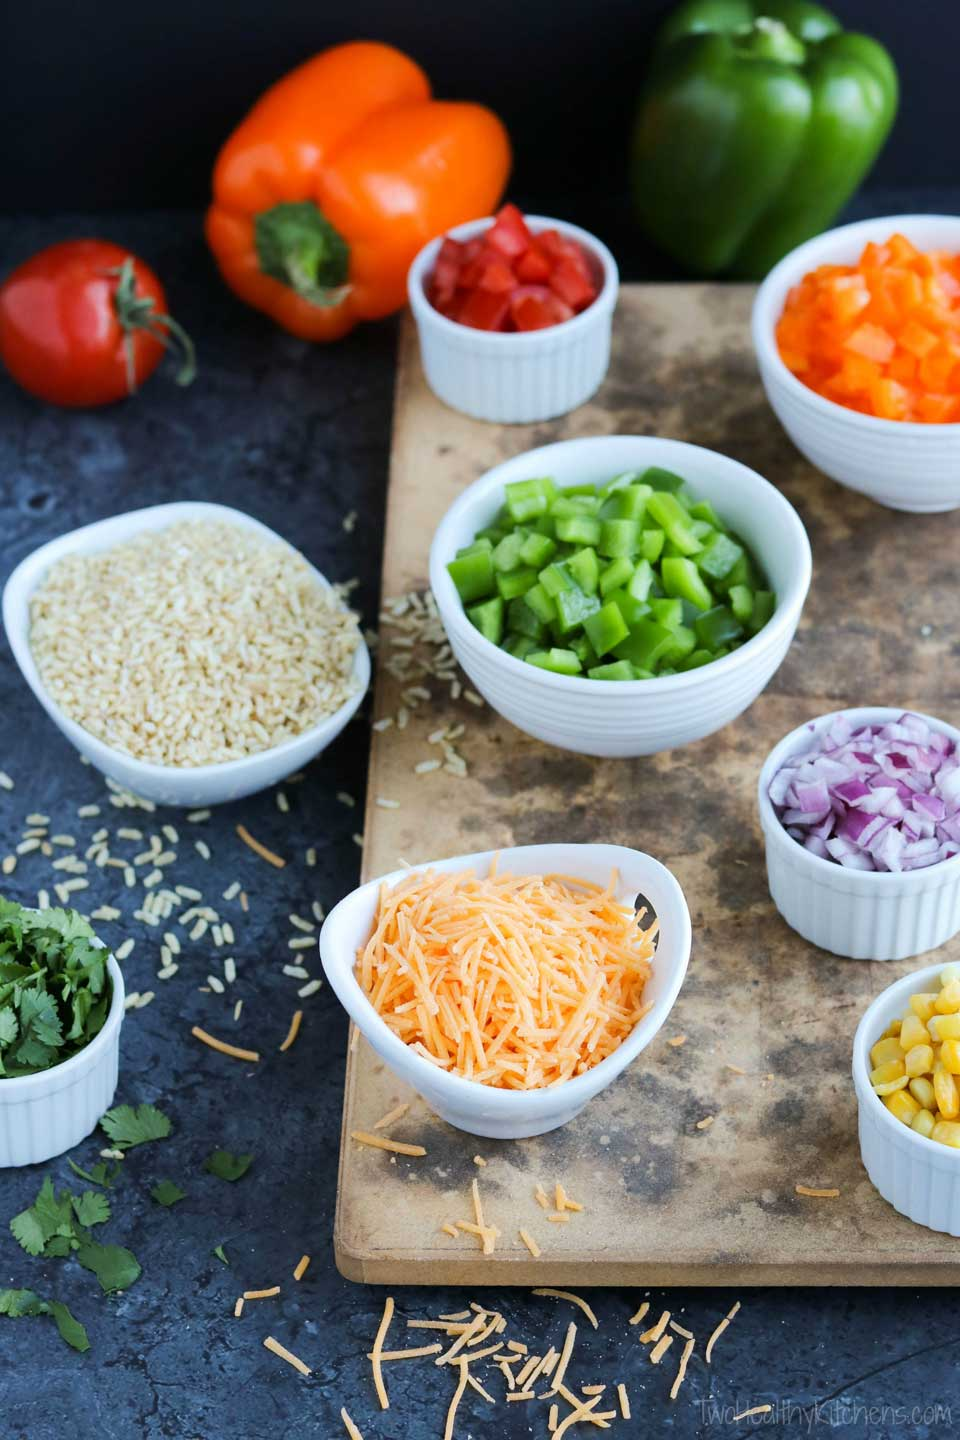 What is mise en place? It means putting everything in its place. And in cooking, that means finding, prepping and measuring ingredients and having them conveniently close at hand when you begin cooking. That's how the pros do it, and the first step in cooking smarter … cooking like a chef!